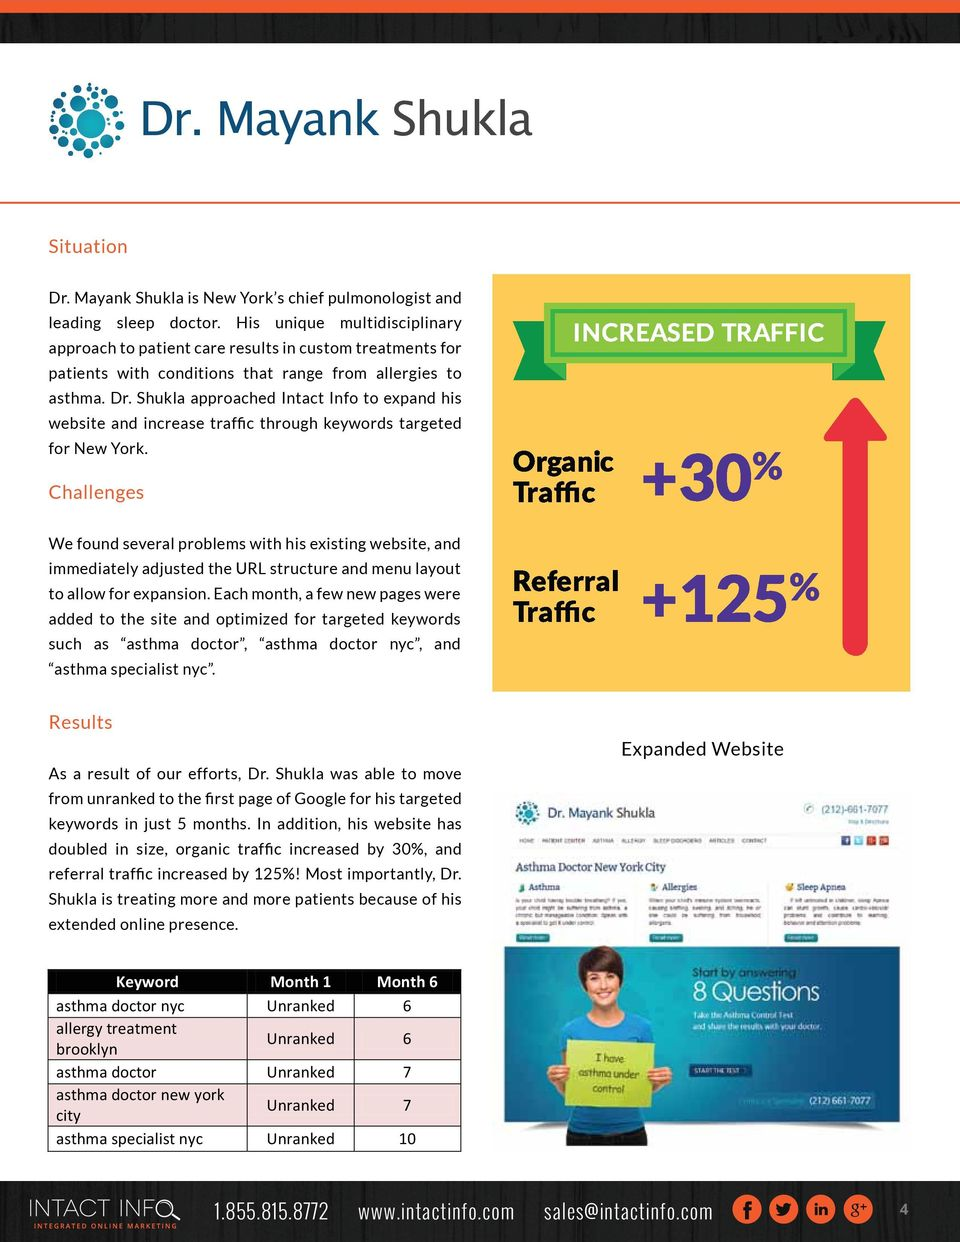 Shukla approached Intact Info to expand his website and increase traffic through keywords targeted for New York.